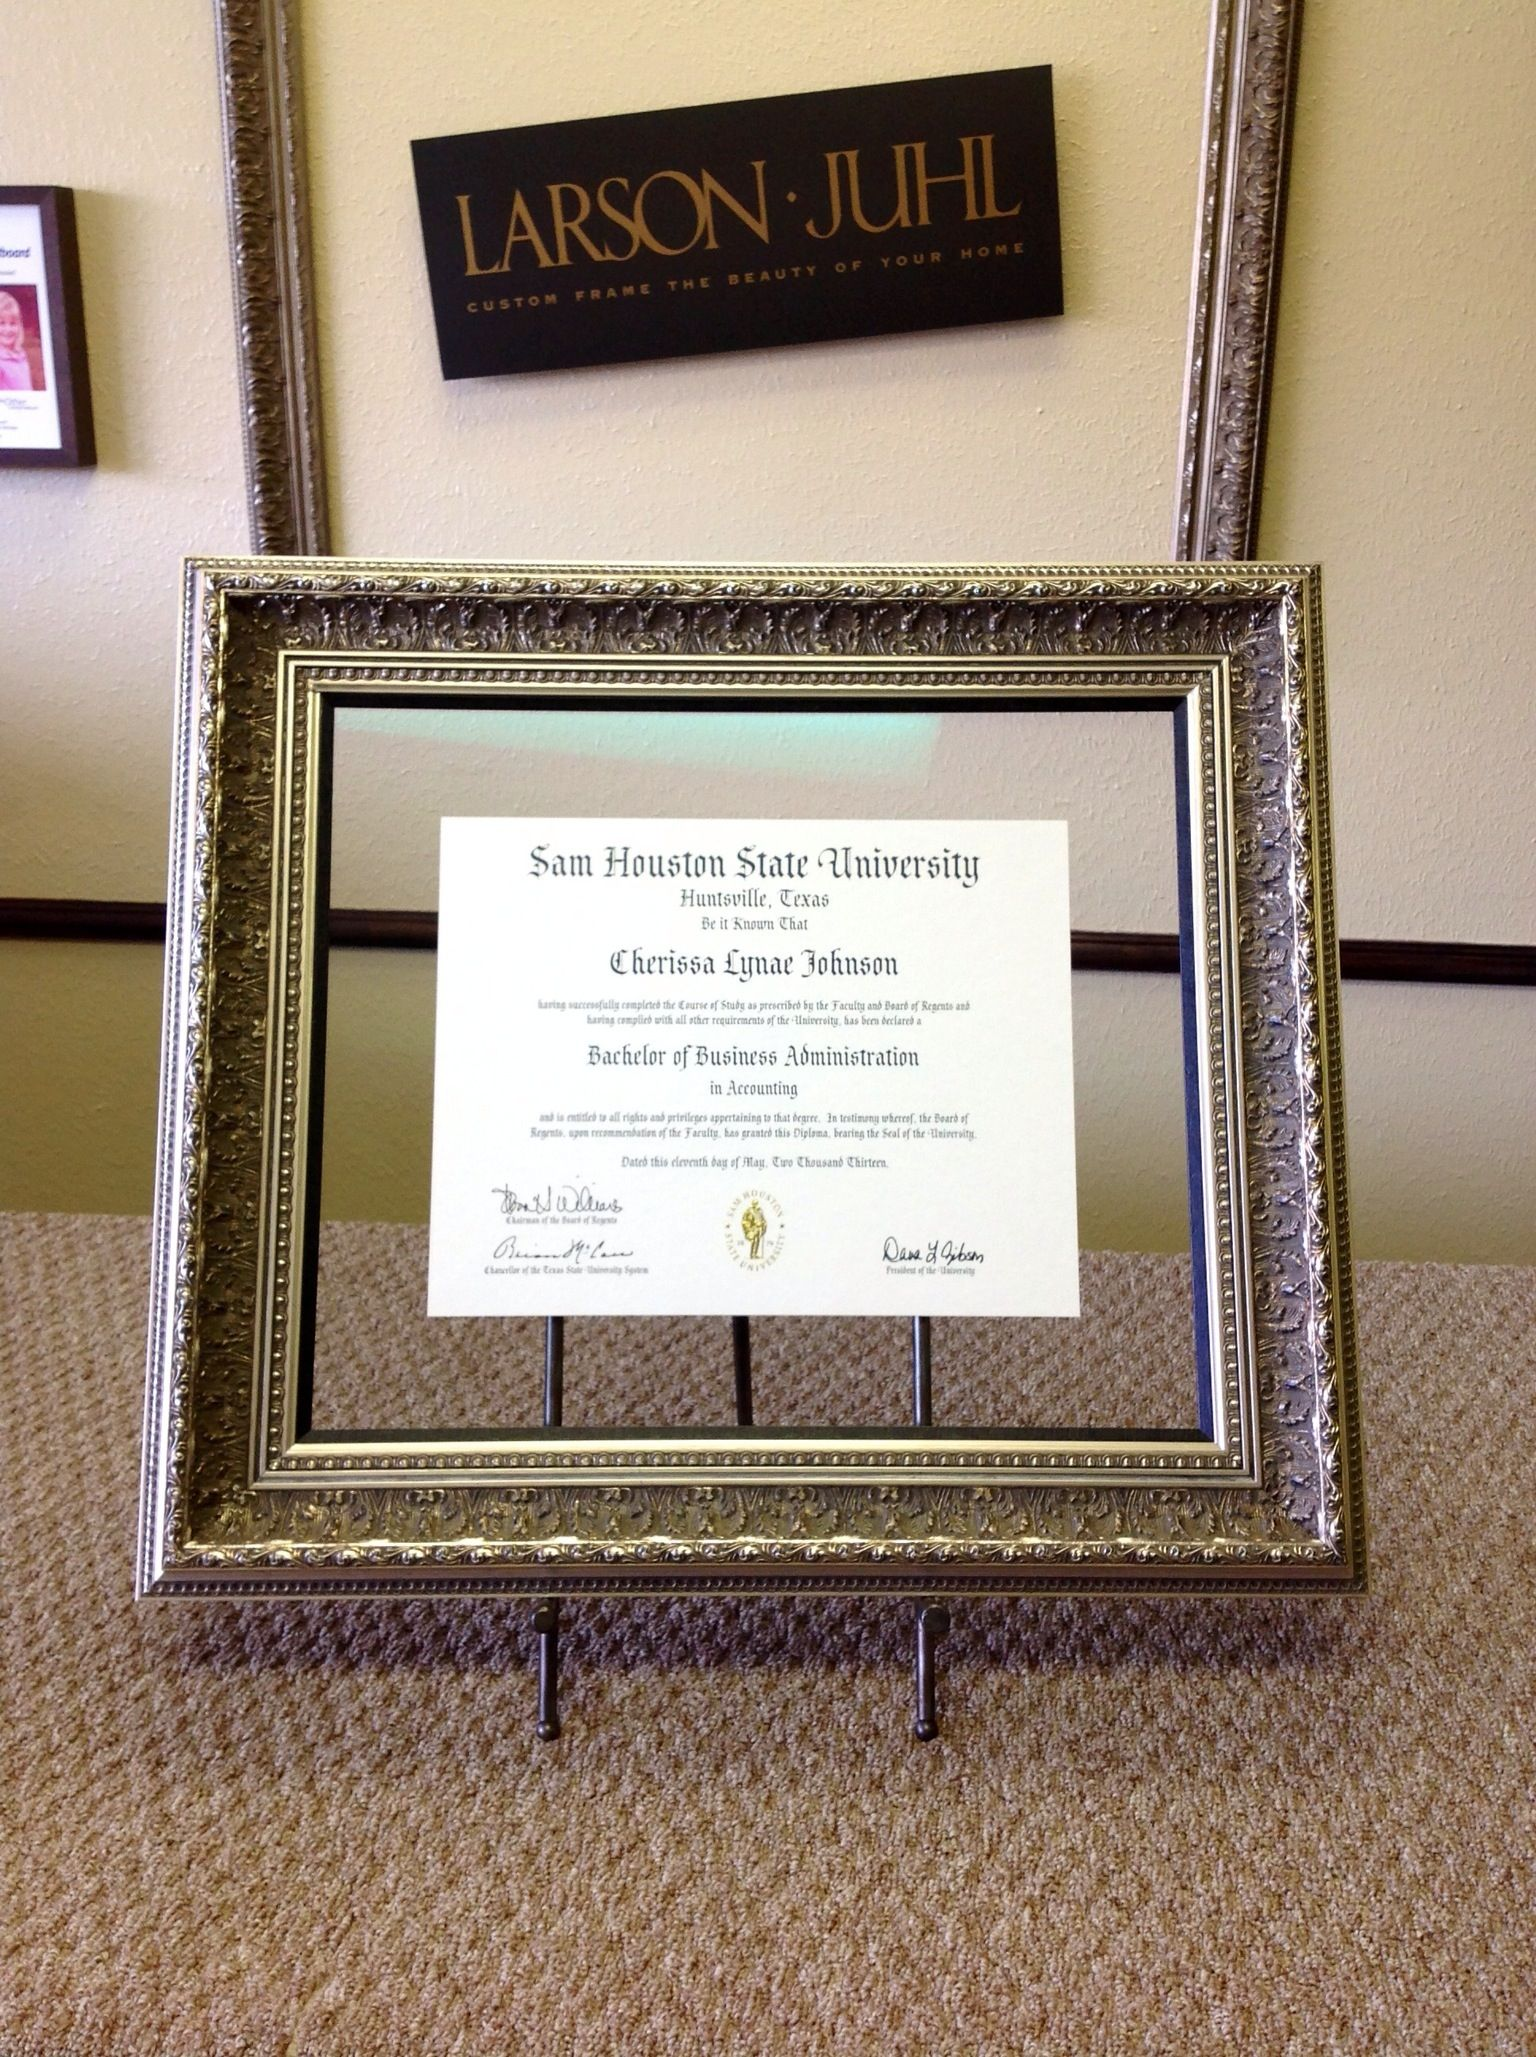 Sam Houston State University Degree Floated Between Two Pieces Of Museum Glass Larson Juhl Frame With Fillet Add Certificate Frames Diploma Frame Degree Frame